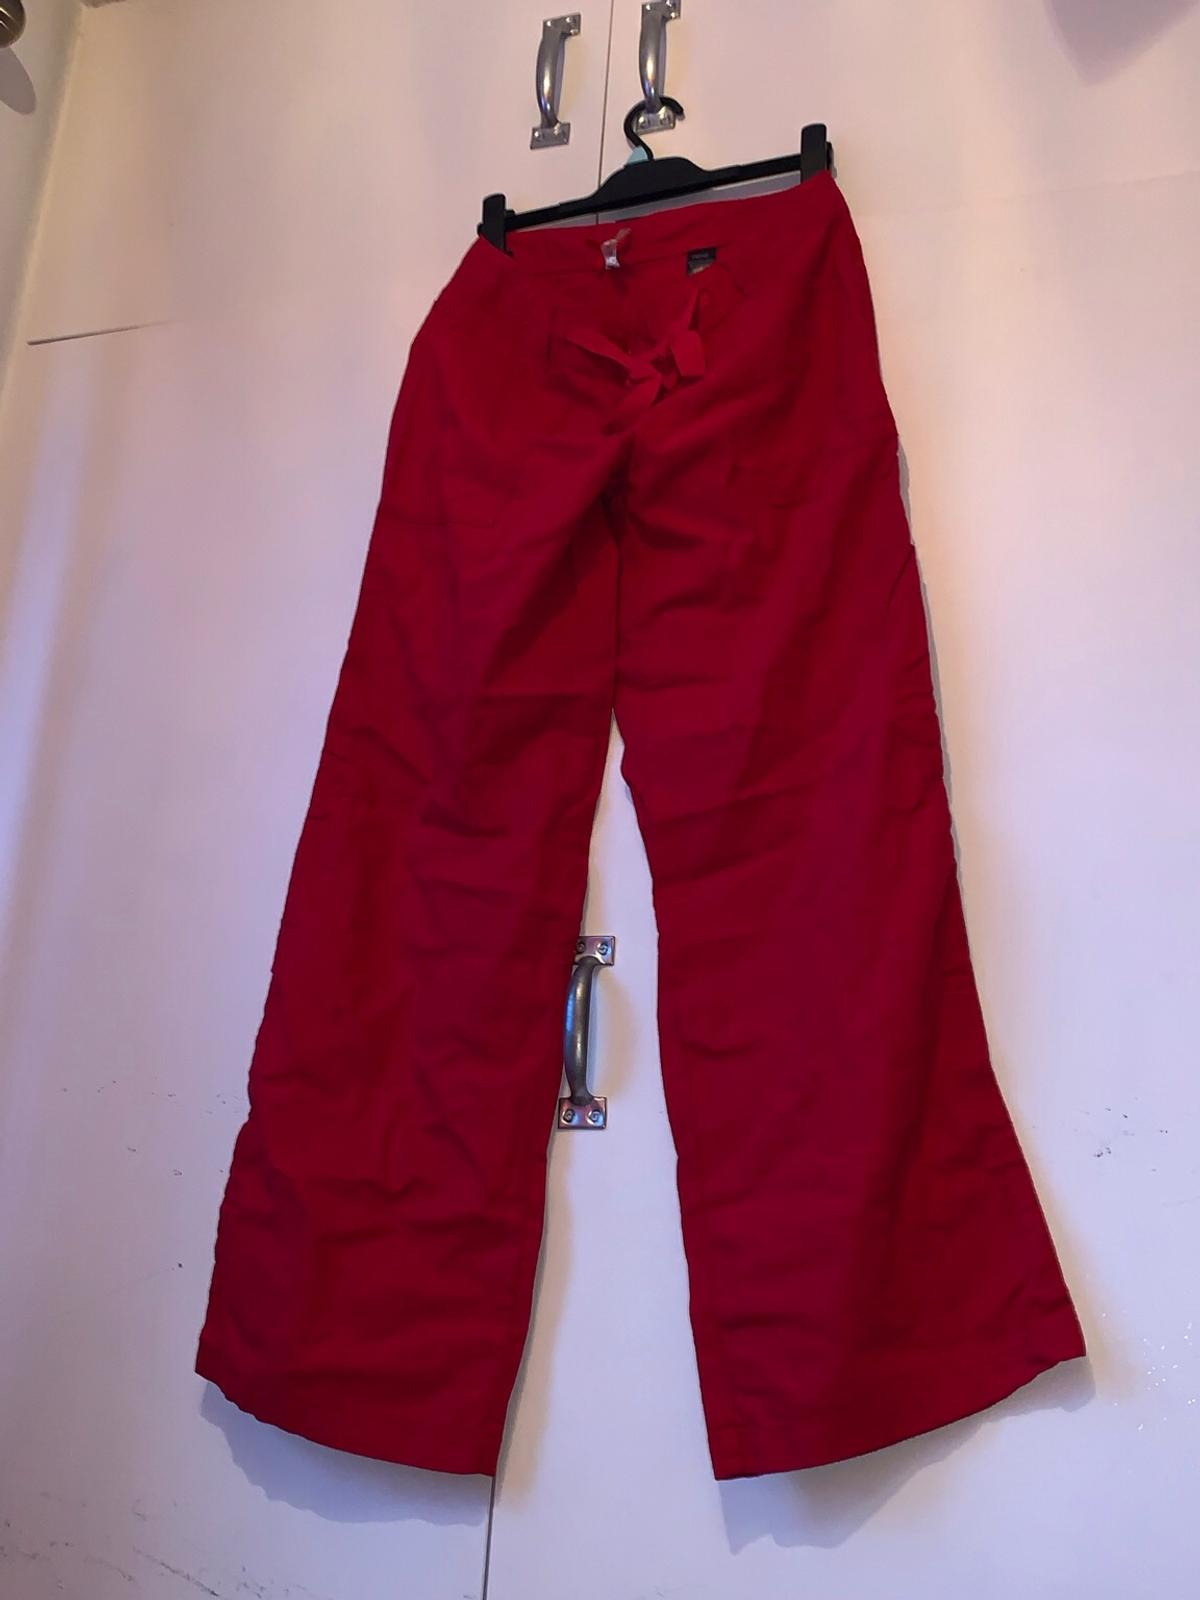 Brand new with tags, red linen trousers from Next size 10R.